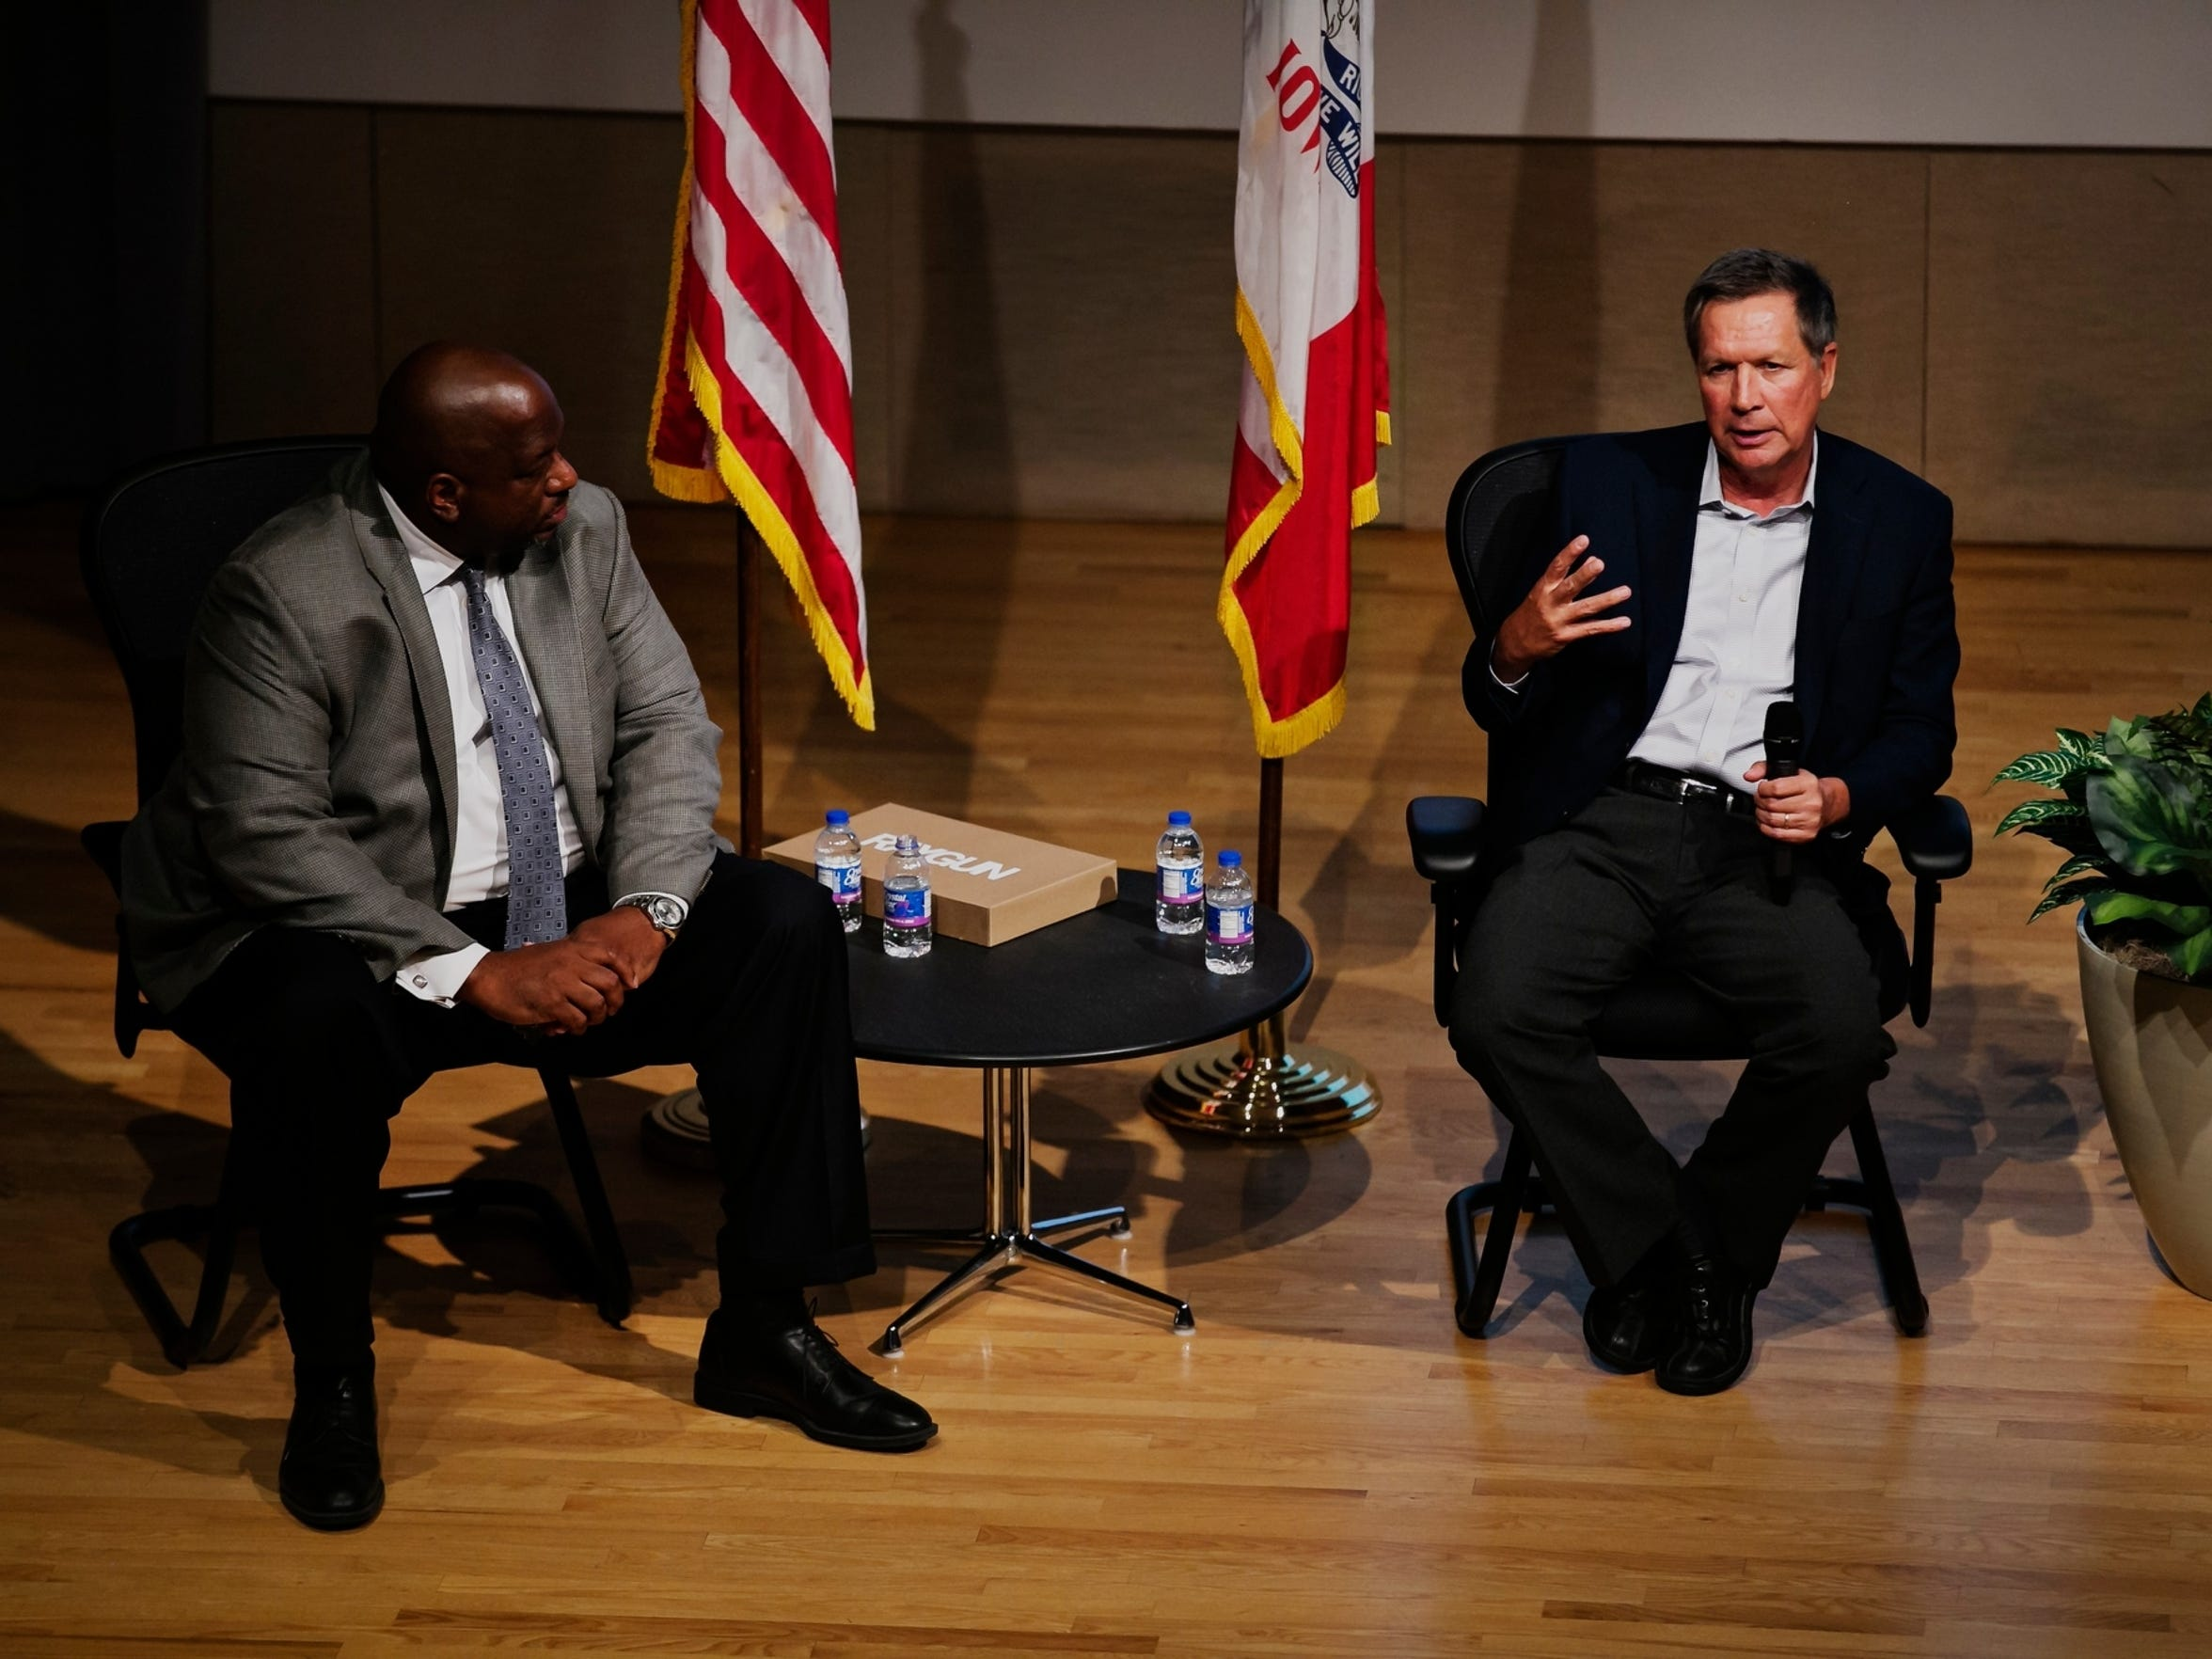 Ohio Governor John Kasich answers questions from the audience during the 2016 Iowa Caucus Consortium as part of the Caucus Candidate Forum Series at the Iowa State Historic Building on Wednesday, June 24, 2015.